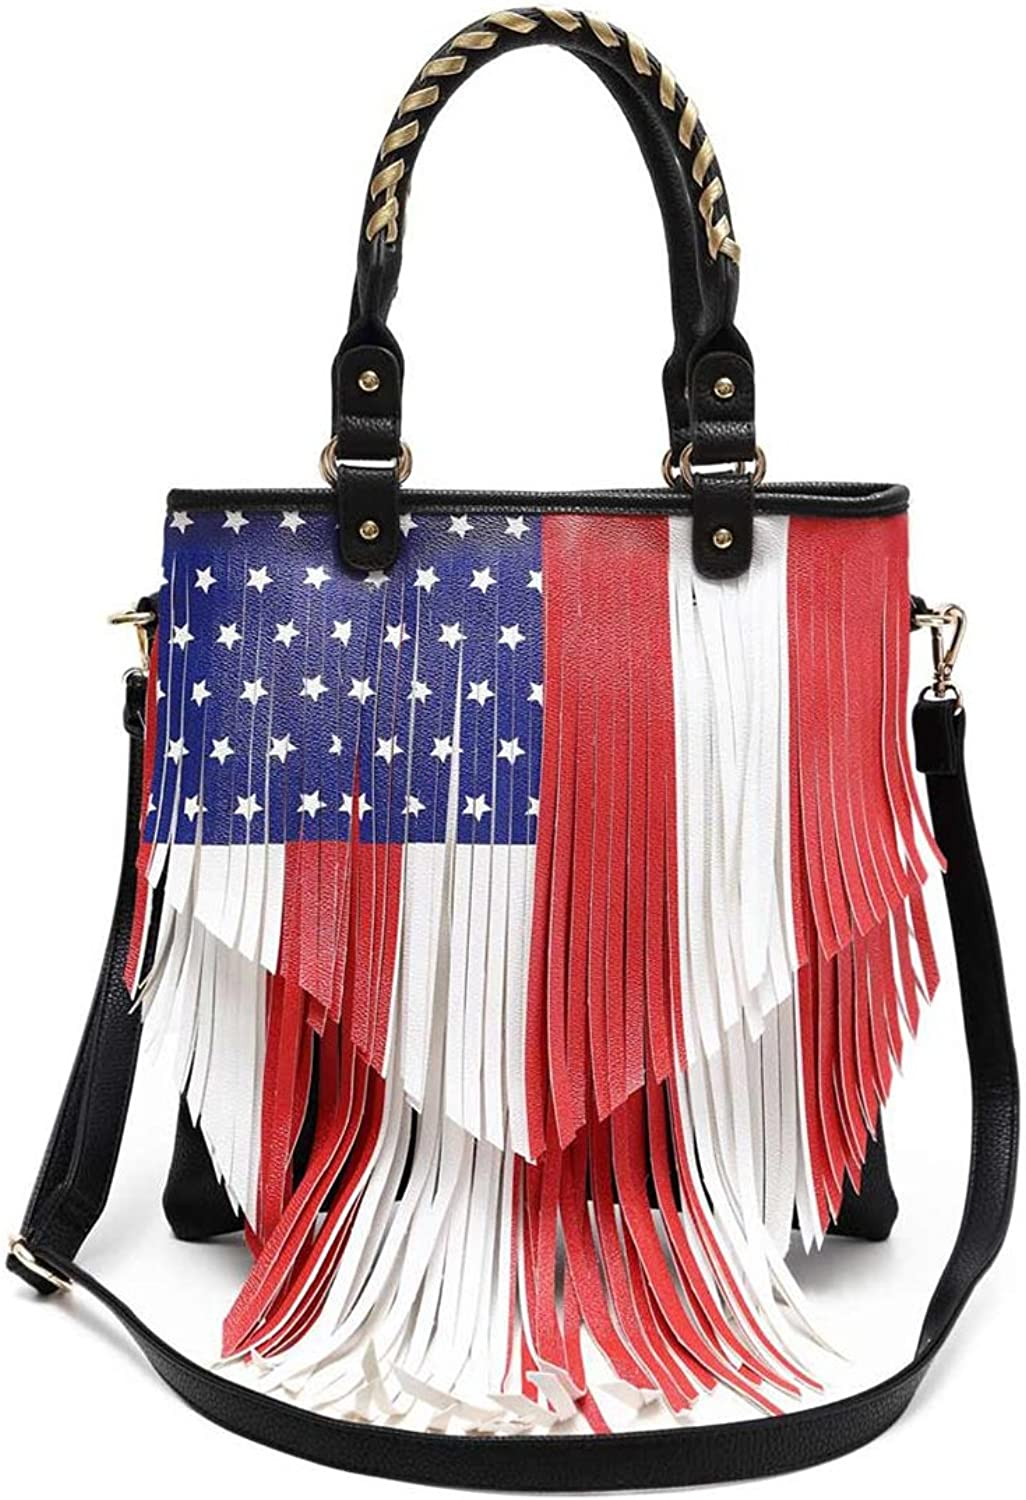 American Flag Stars and Stripes Fringe Cross Body Handbags Western Tote Purse Women Single Shoulder Bag